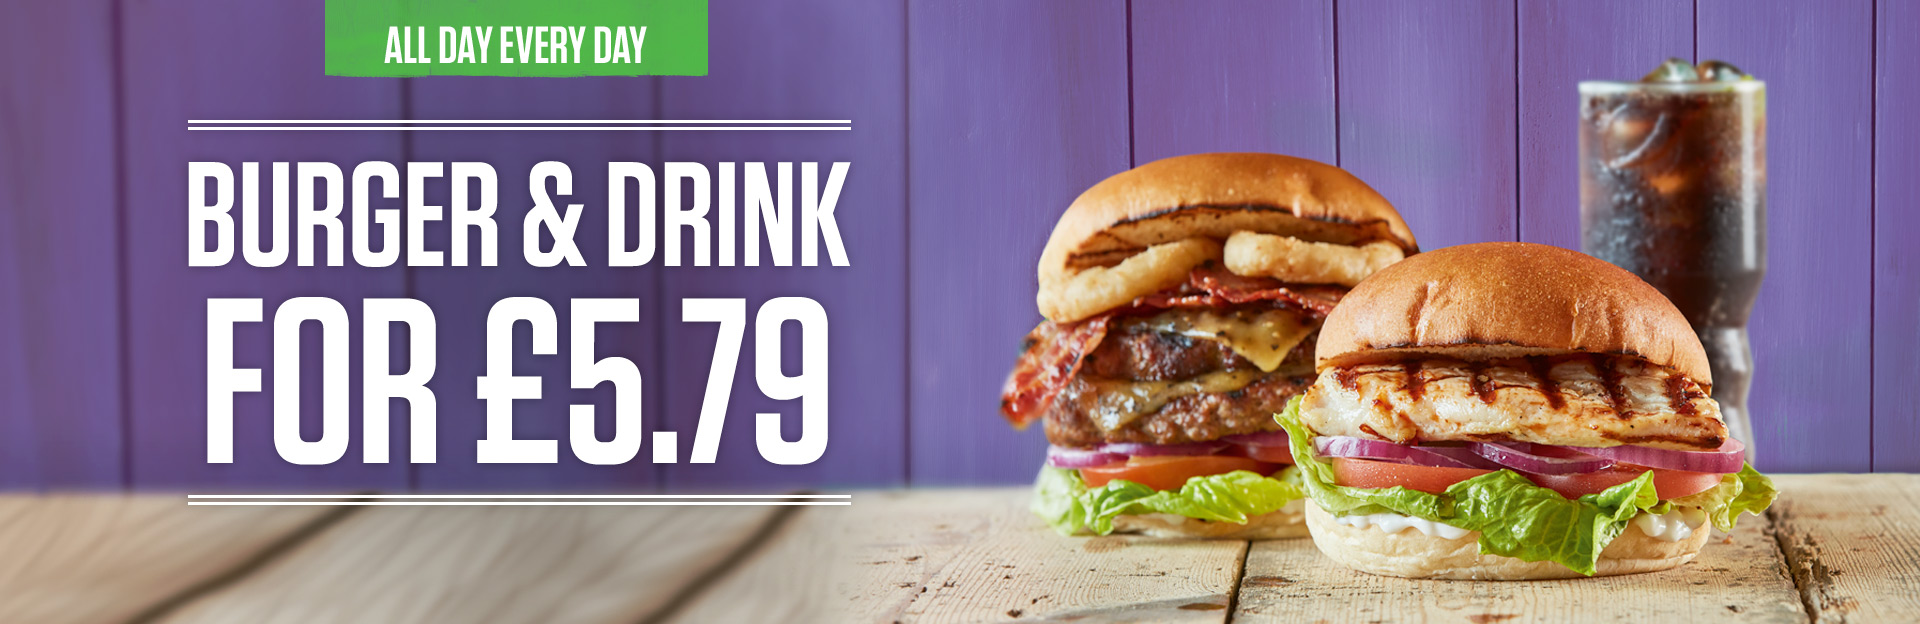 Burger and Drink Deal at The Park